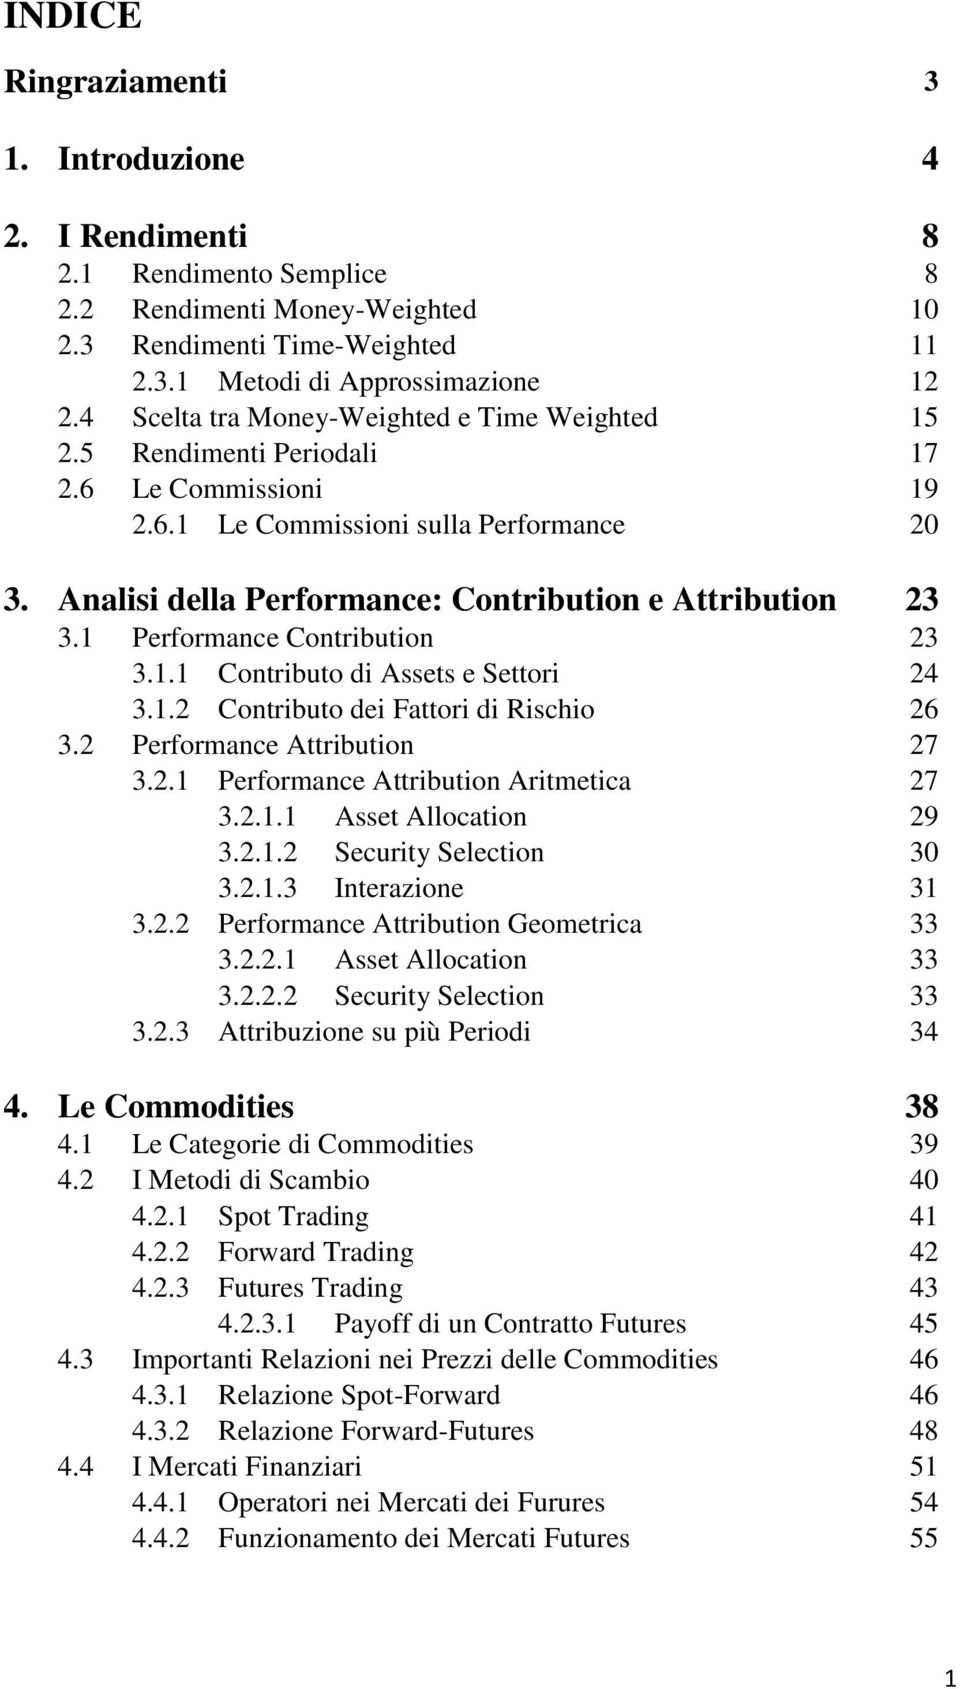 Analisi della Performance: Contribution e Attribution 23 3.1 Performance Contribution 23 3.1.1 Contributo di Assets e Settori 24 3.1.2 Contributo dei Fattori di Rischio 26 3.